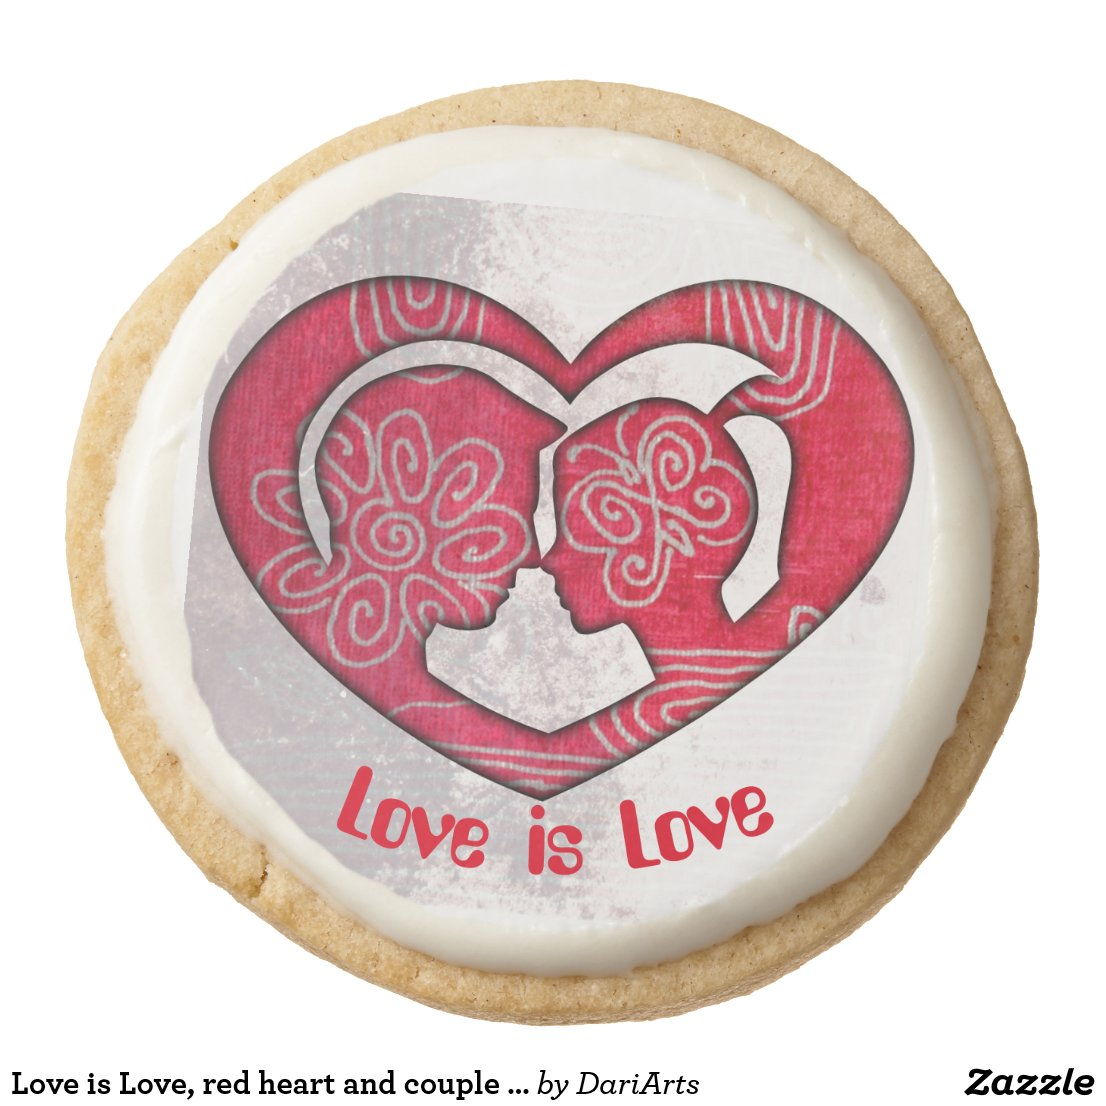 Love is Love, red heart and couple in love cookies